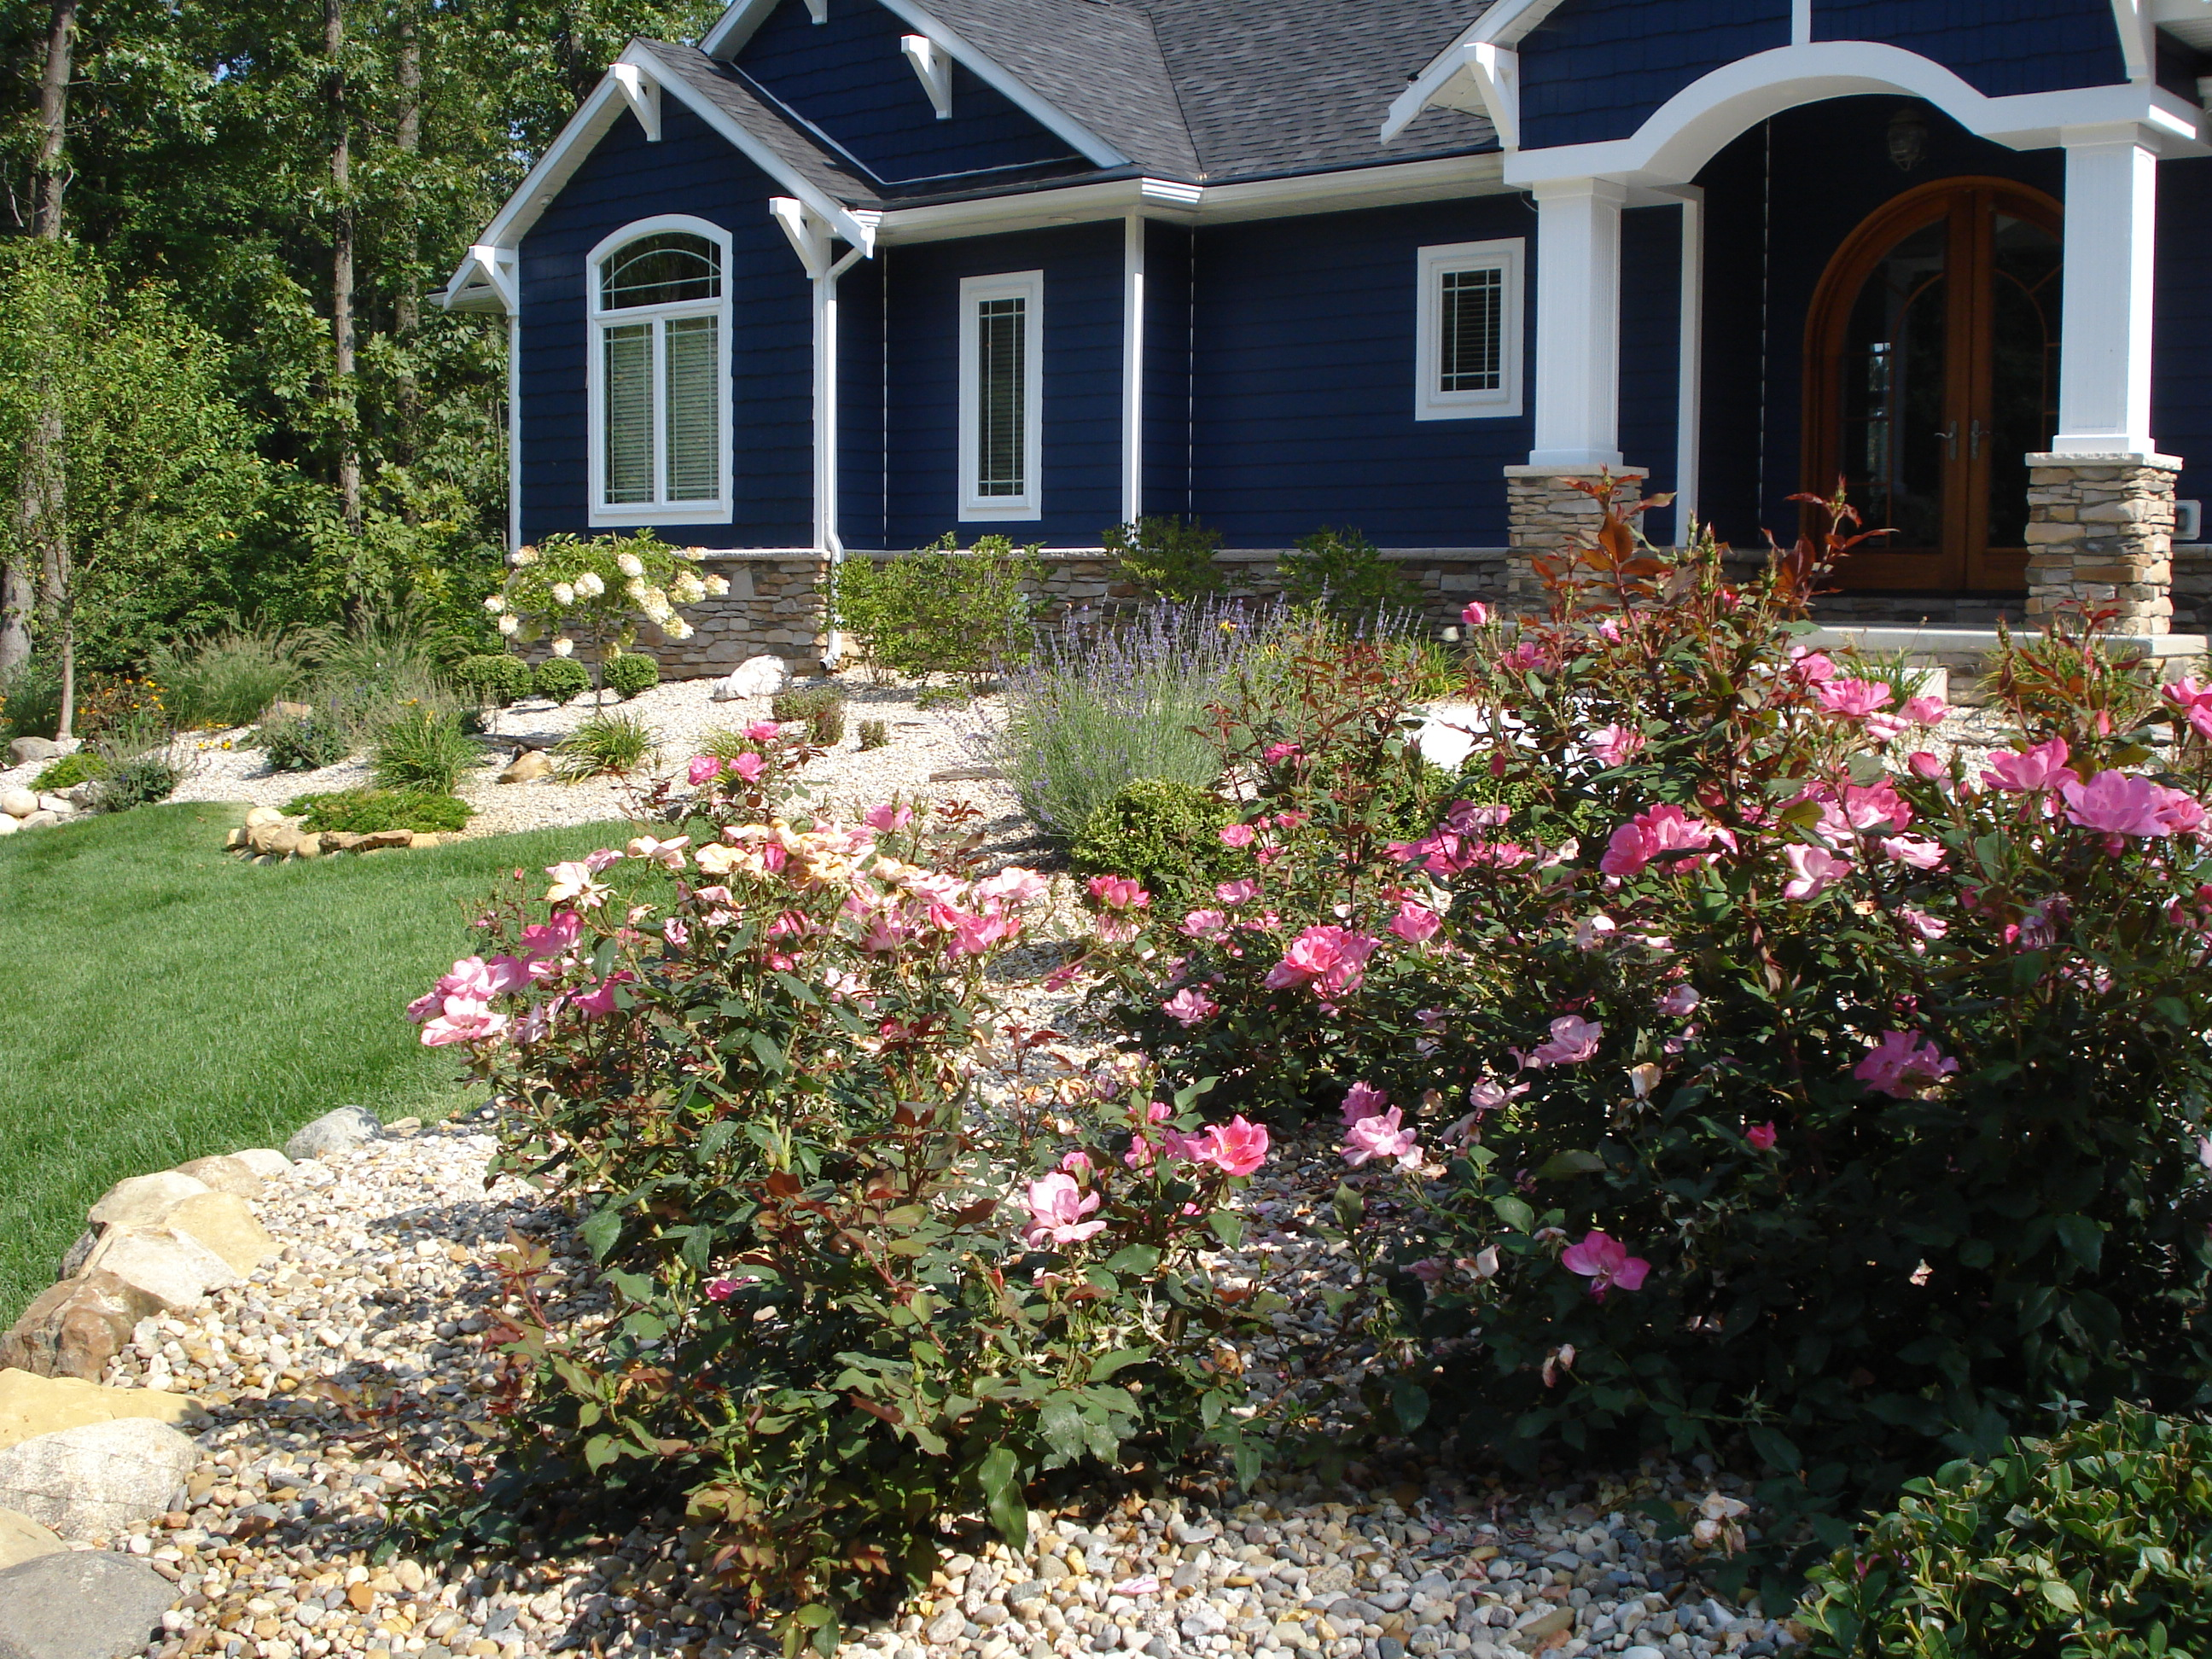 Perennials & Shrub Plantings